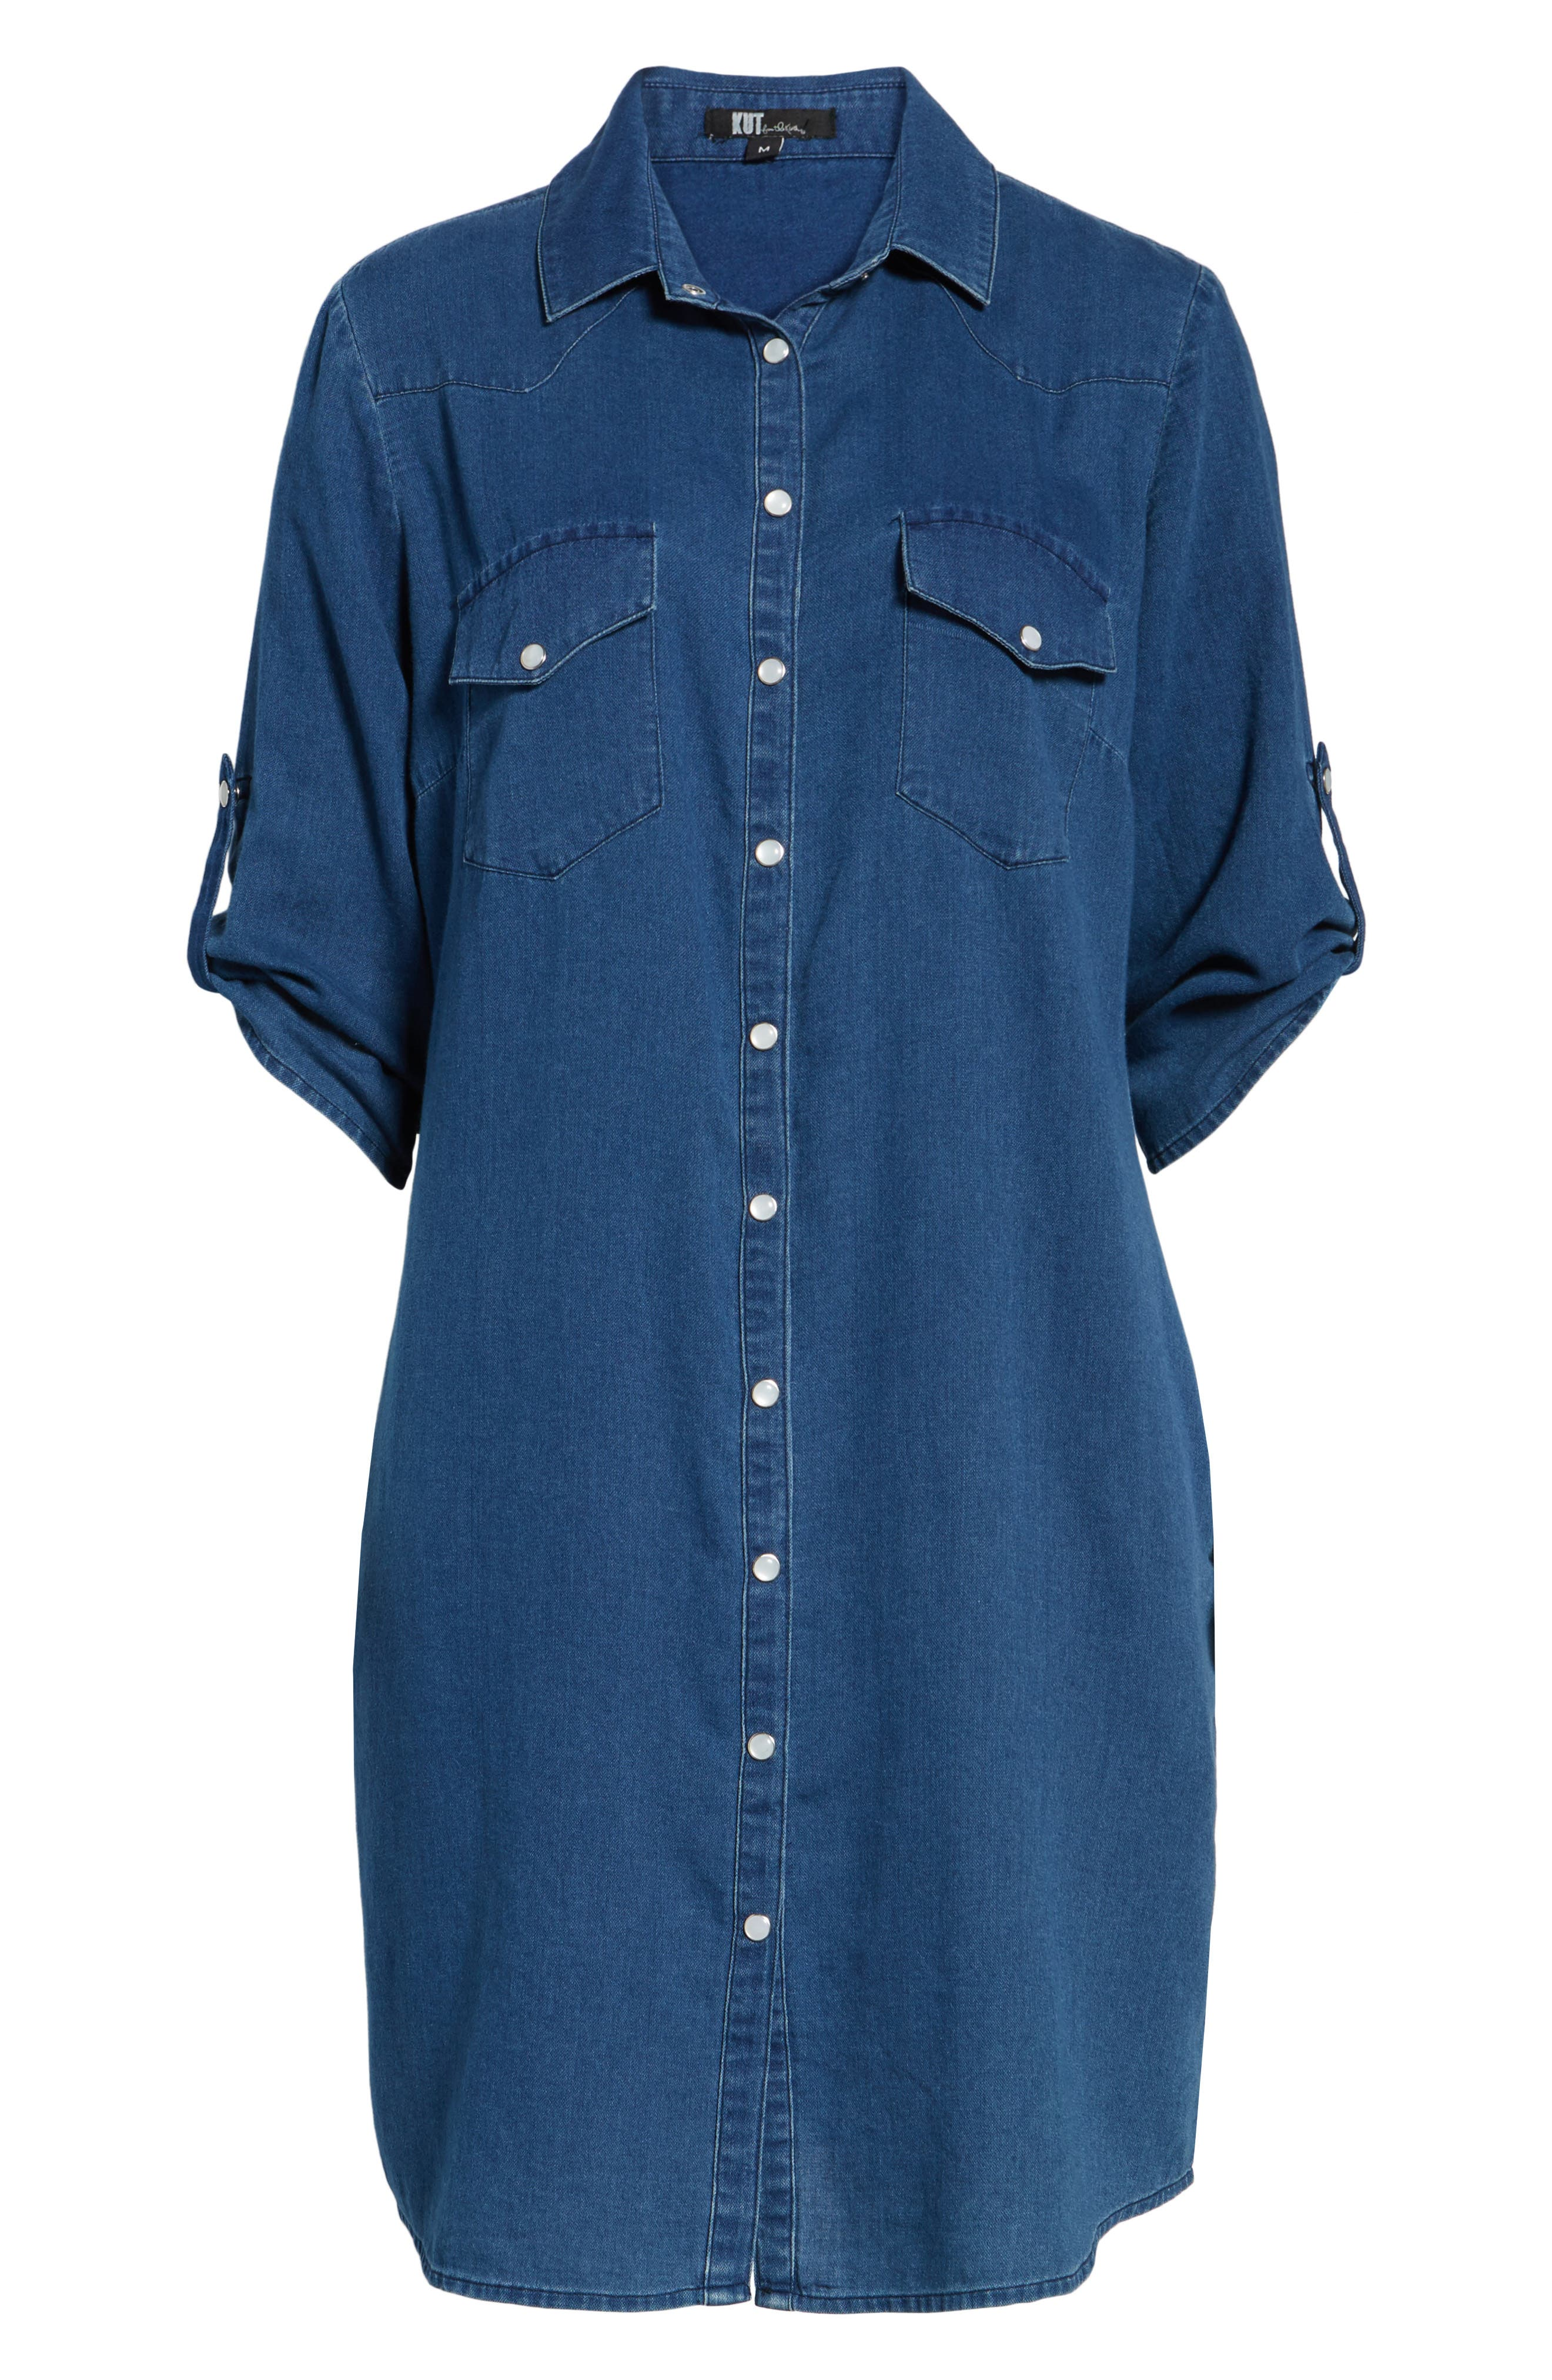 Denim Shirtdress,                             Alternate thumbnail 6, color,                             425